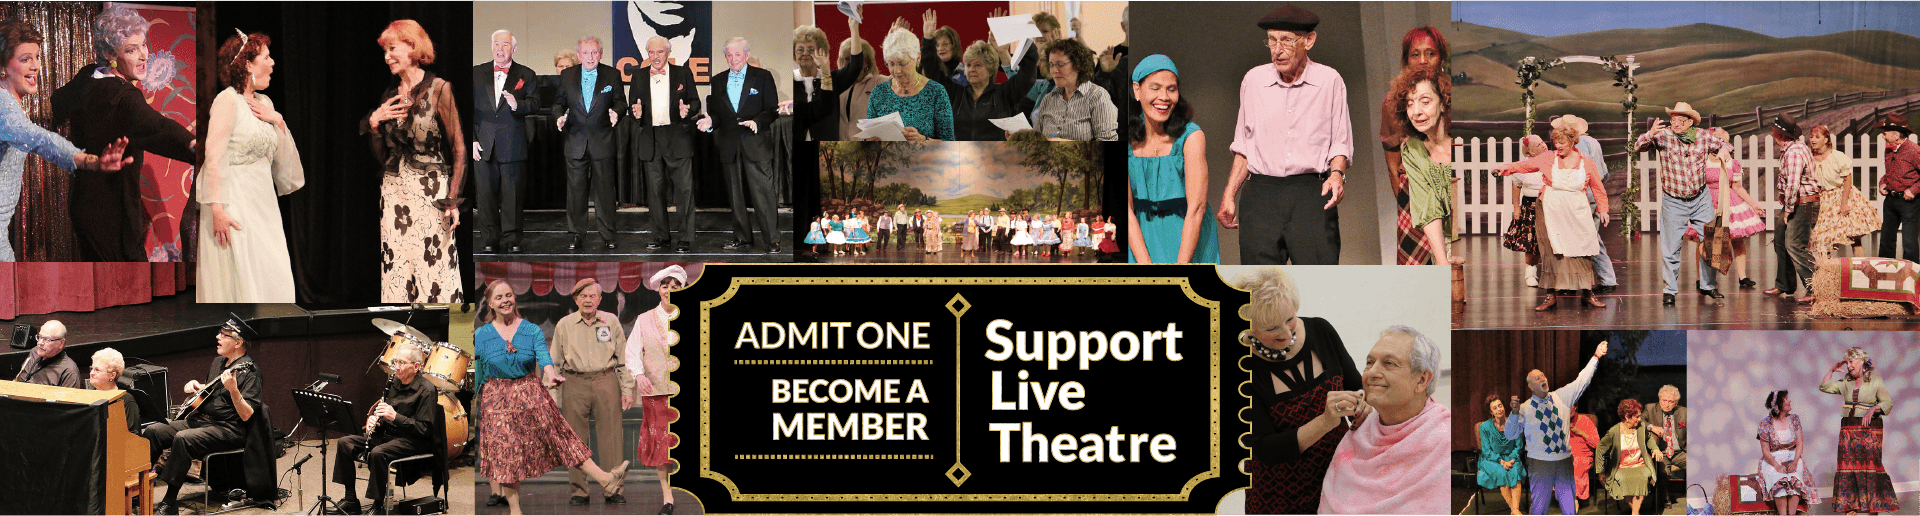 support live theatre - become a member